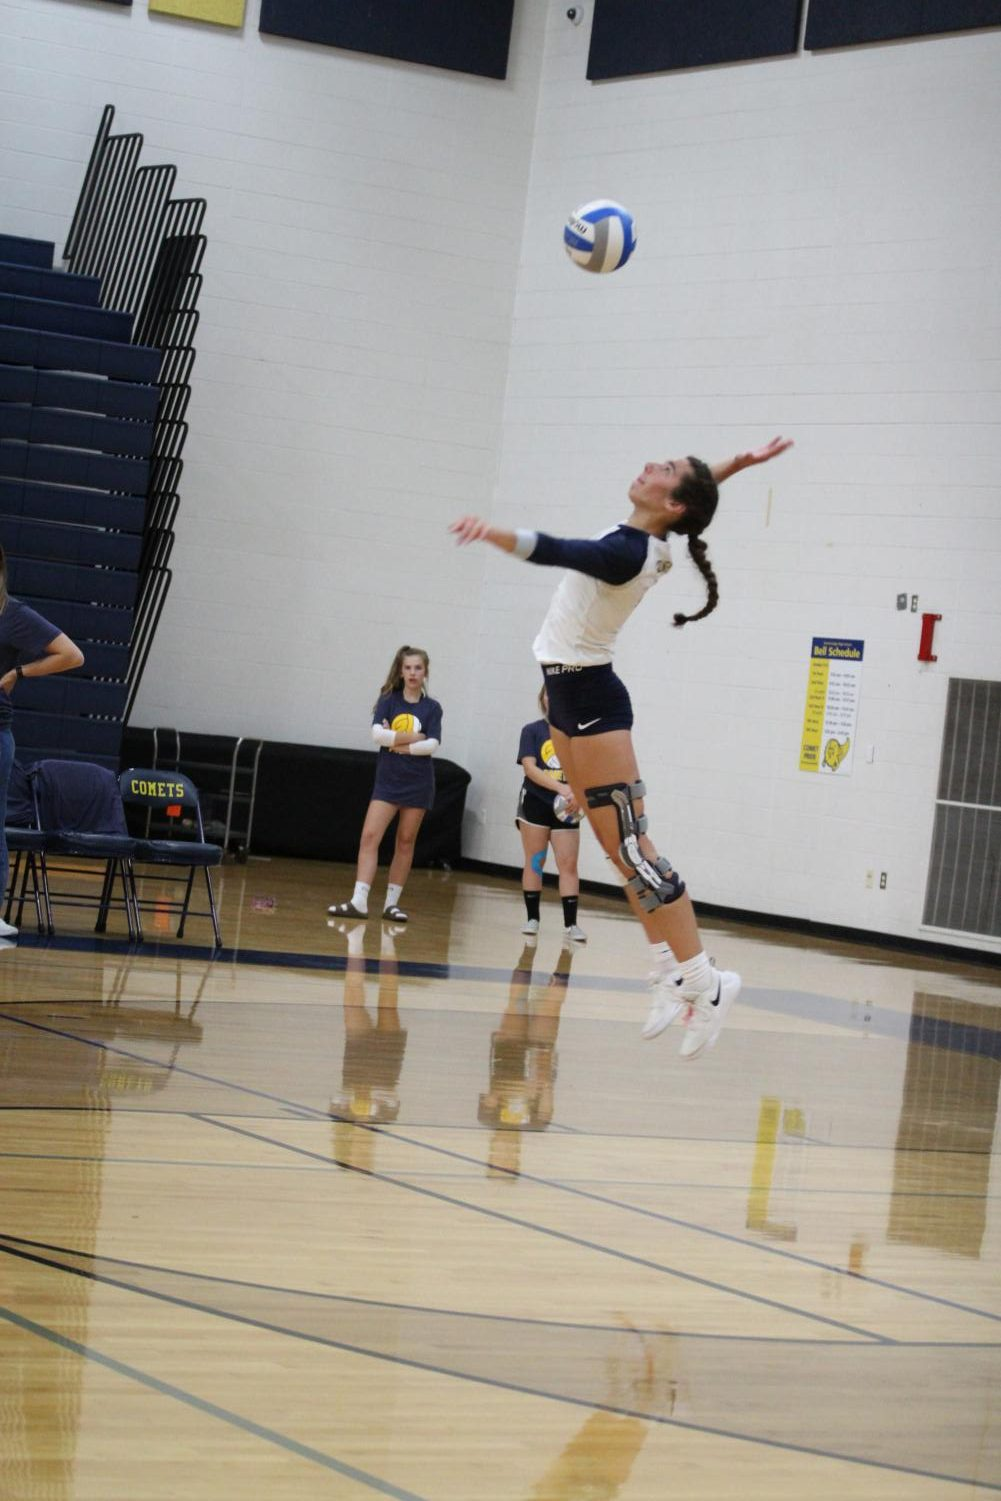 Senior Peyton Goschka serving during her most recent match. The team won against Waverly, the opposing team.